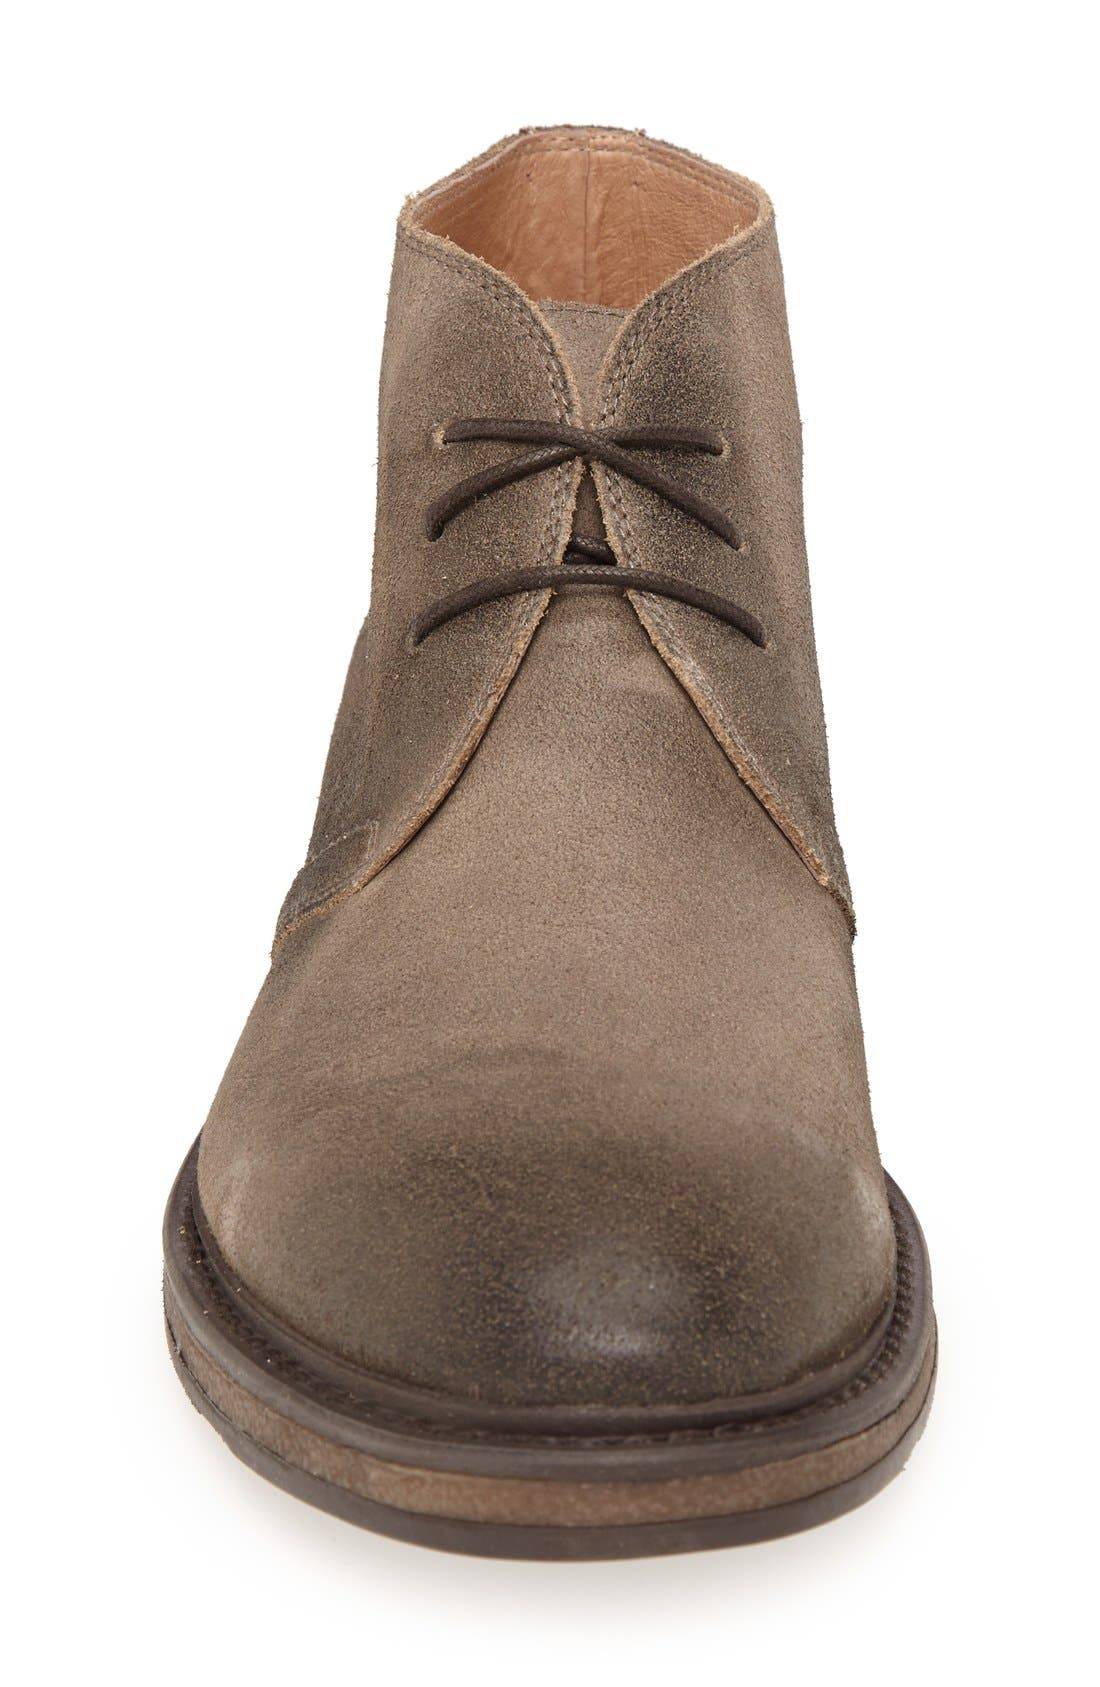 'Canyon' Chukka Boot,                             Alternate thumbnail 15, color,